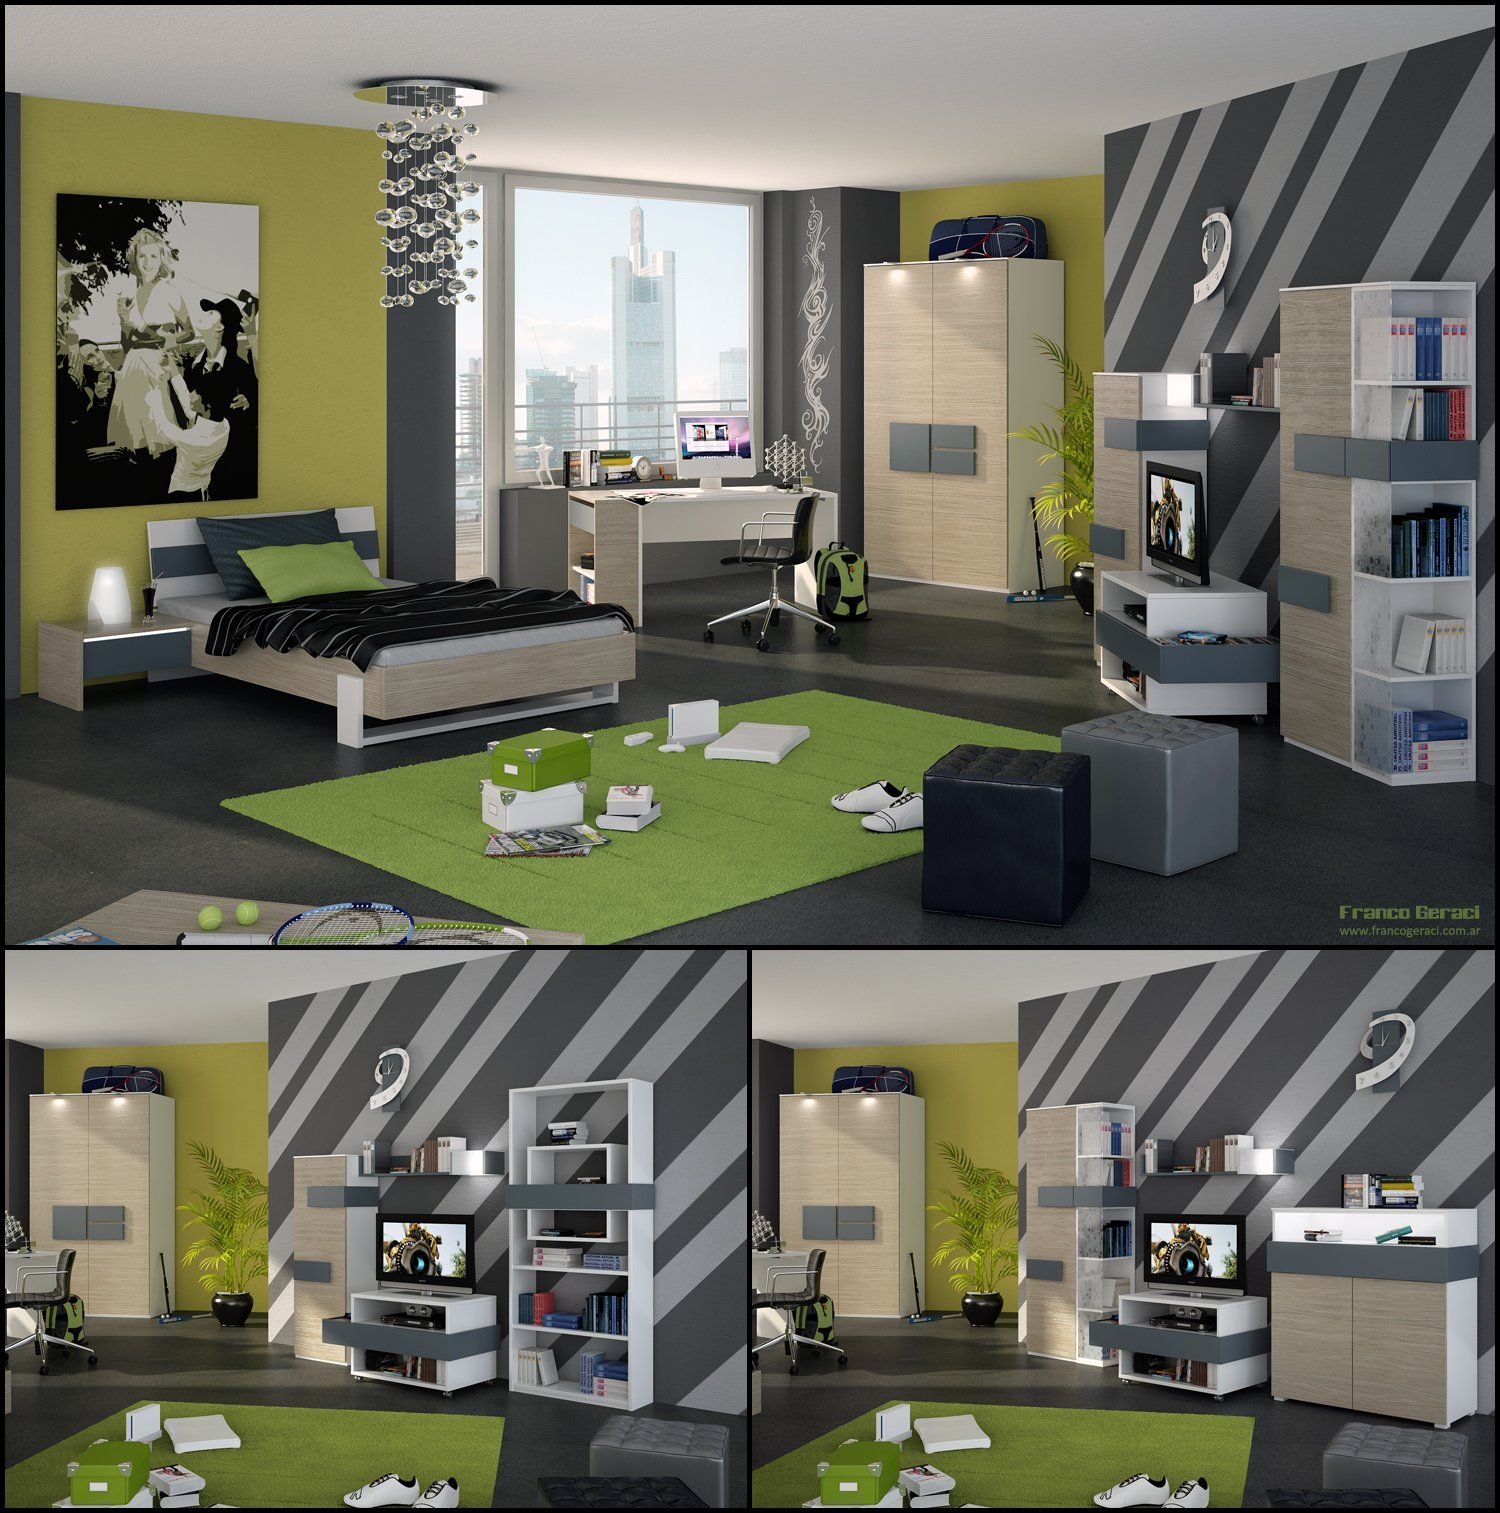 Teen bedroom decor green - Grey Bed With Black Blanket And Rectangular Green